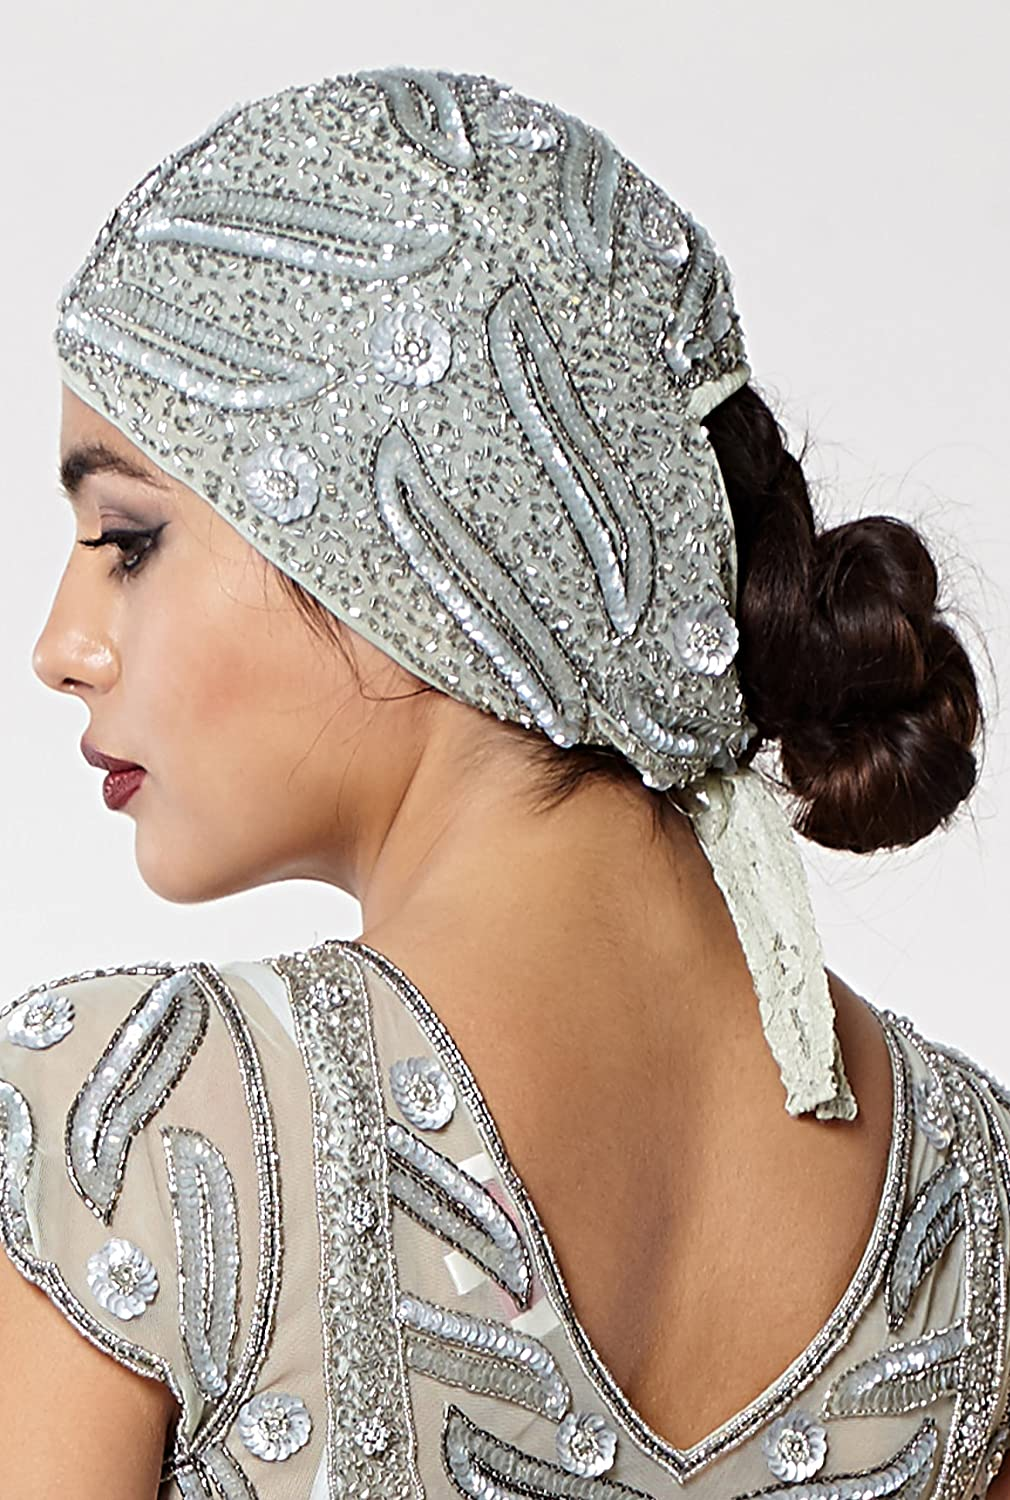 1920s Accessories | Great Gatsby Accessories Guide gatsbylady london Juliet Vintage Inspired Flapper Cap in Grey Silver $35.07 AT vintagedancer.com